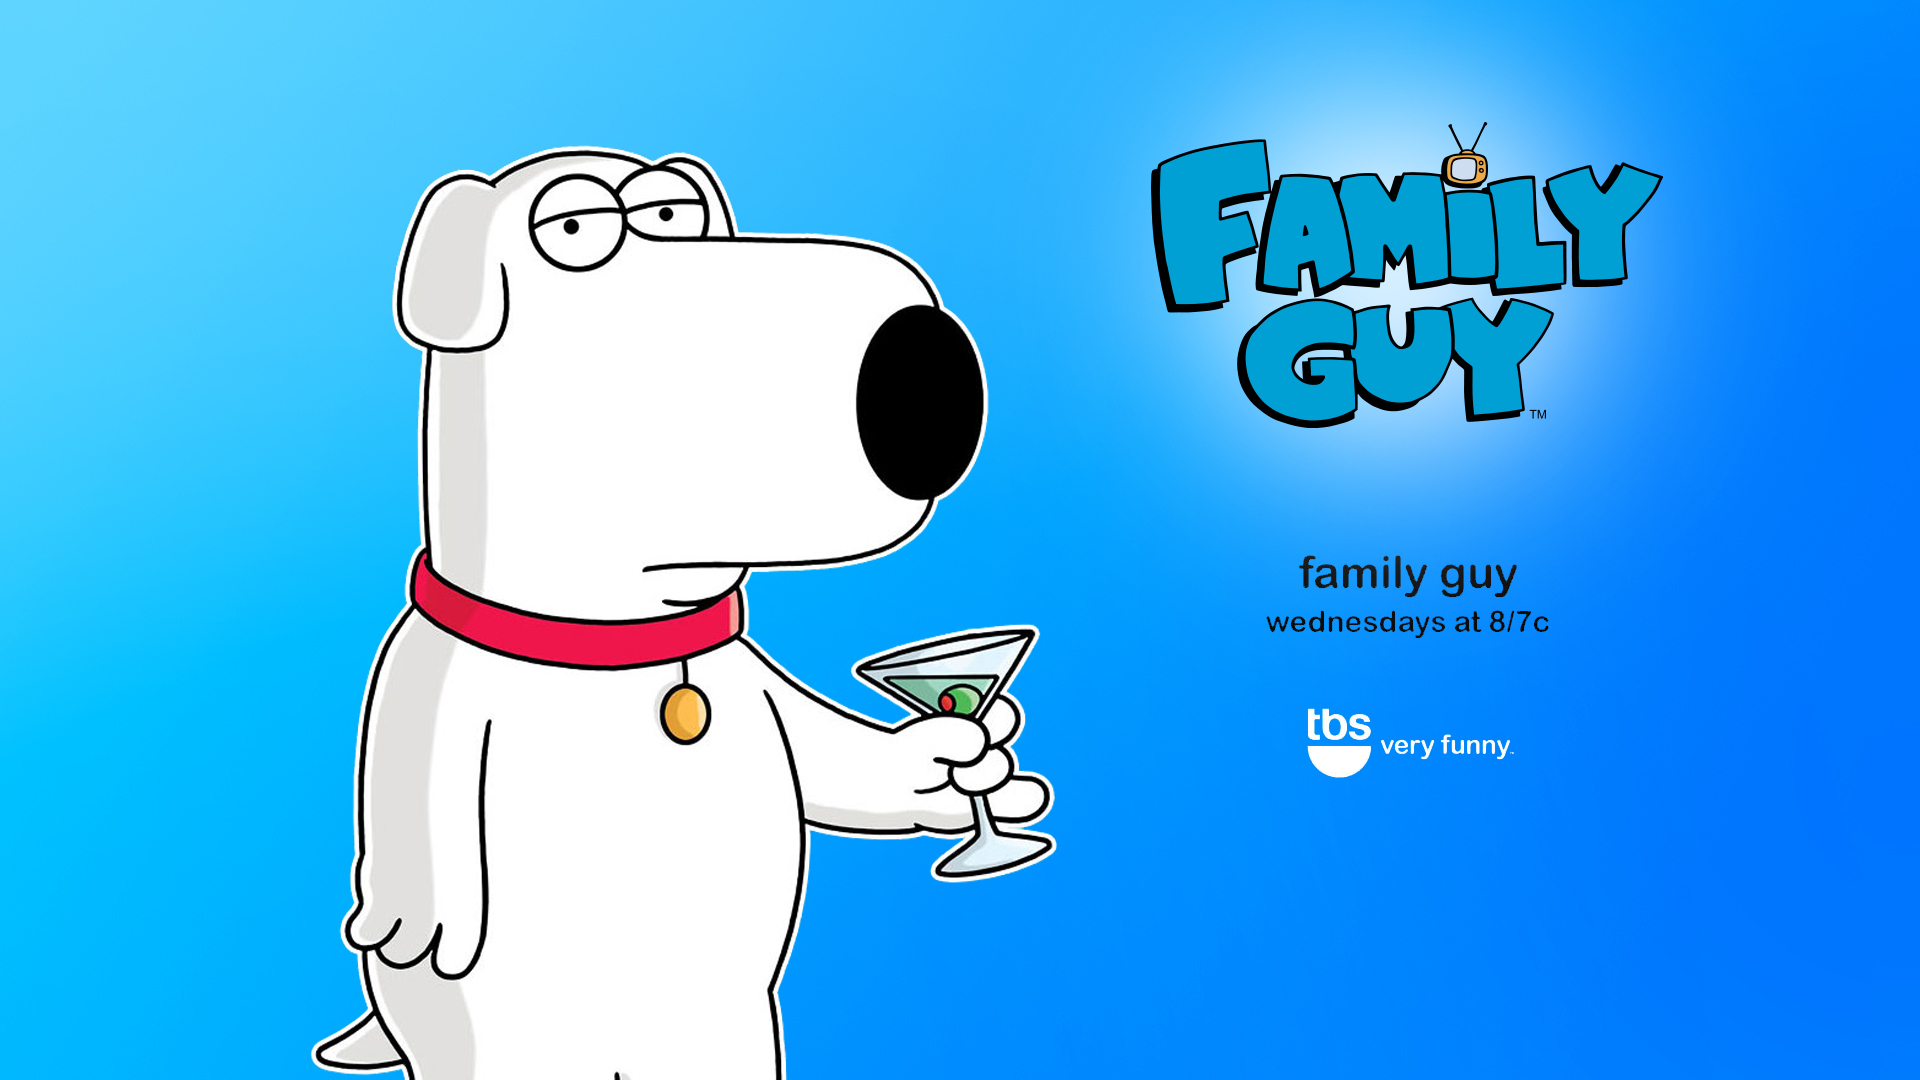 Family Guy Family Guy 1920x1080 Desktop Walpaper Collection